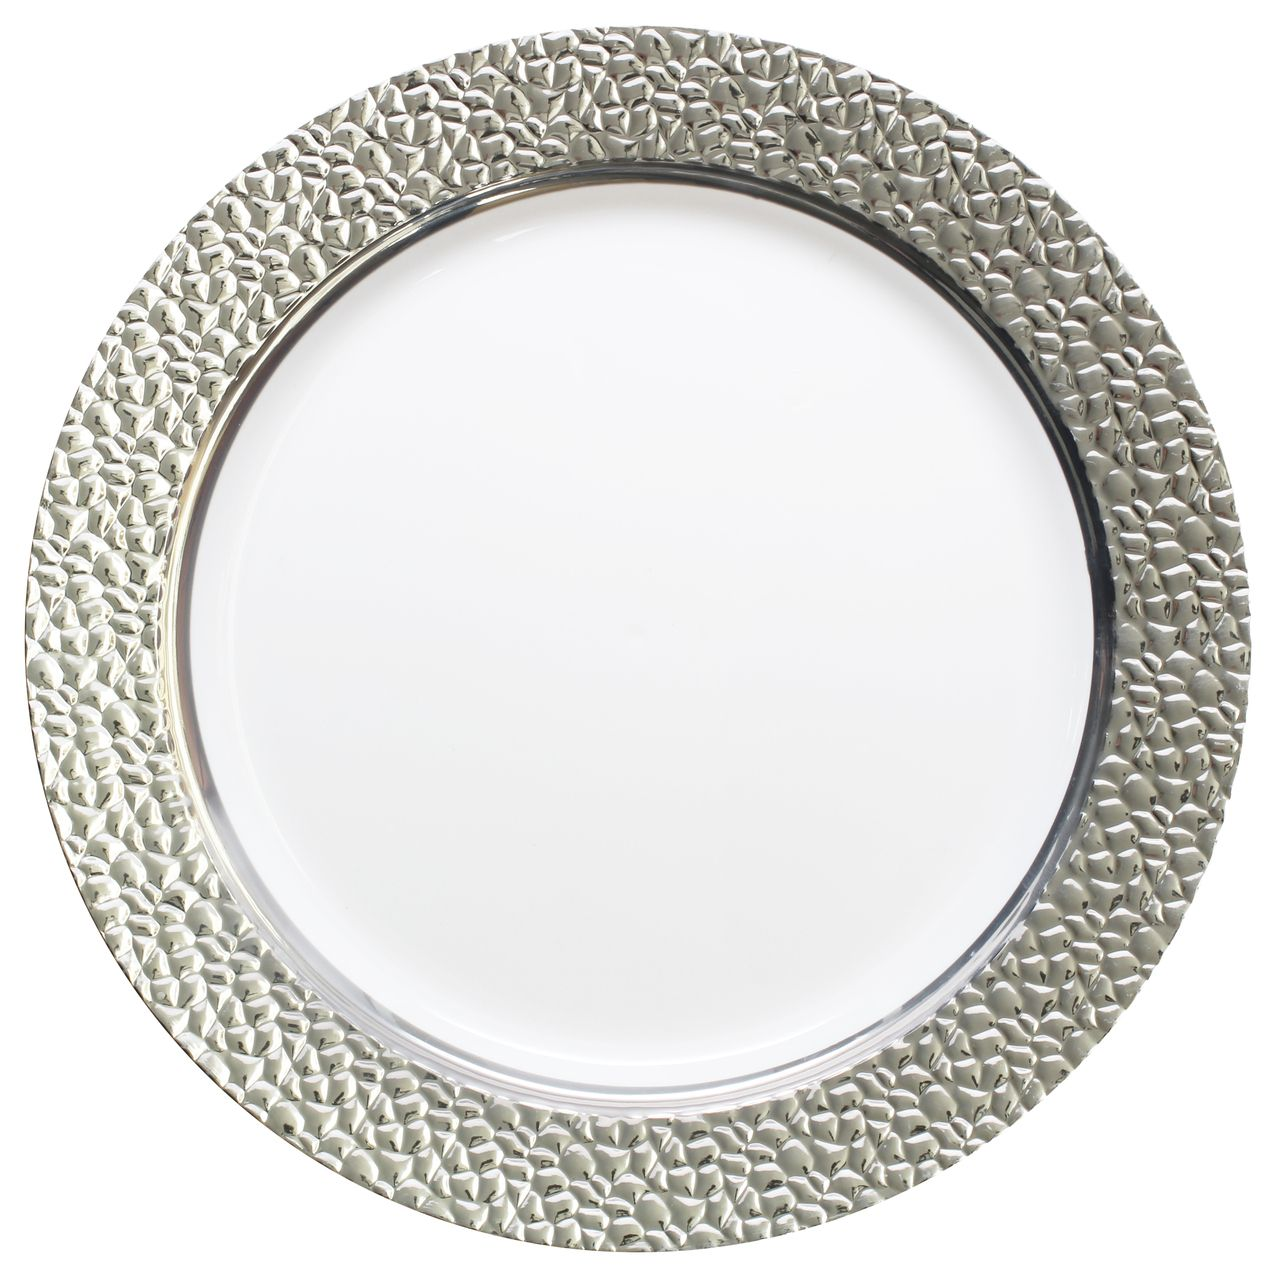 Posh Party Supplies - Hammered - Elegant 7   Clear Plastic Salad Plate with Silver Trim - 120 Plastic Plates ...  sc 1 st  Pinterest : posh disposable plates - pezcame.com